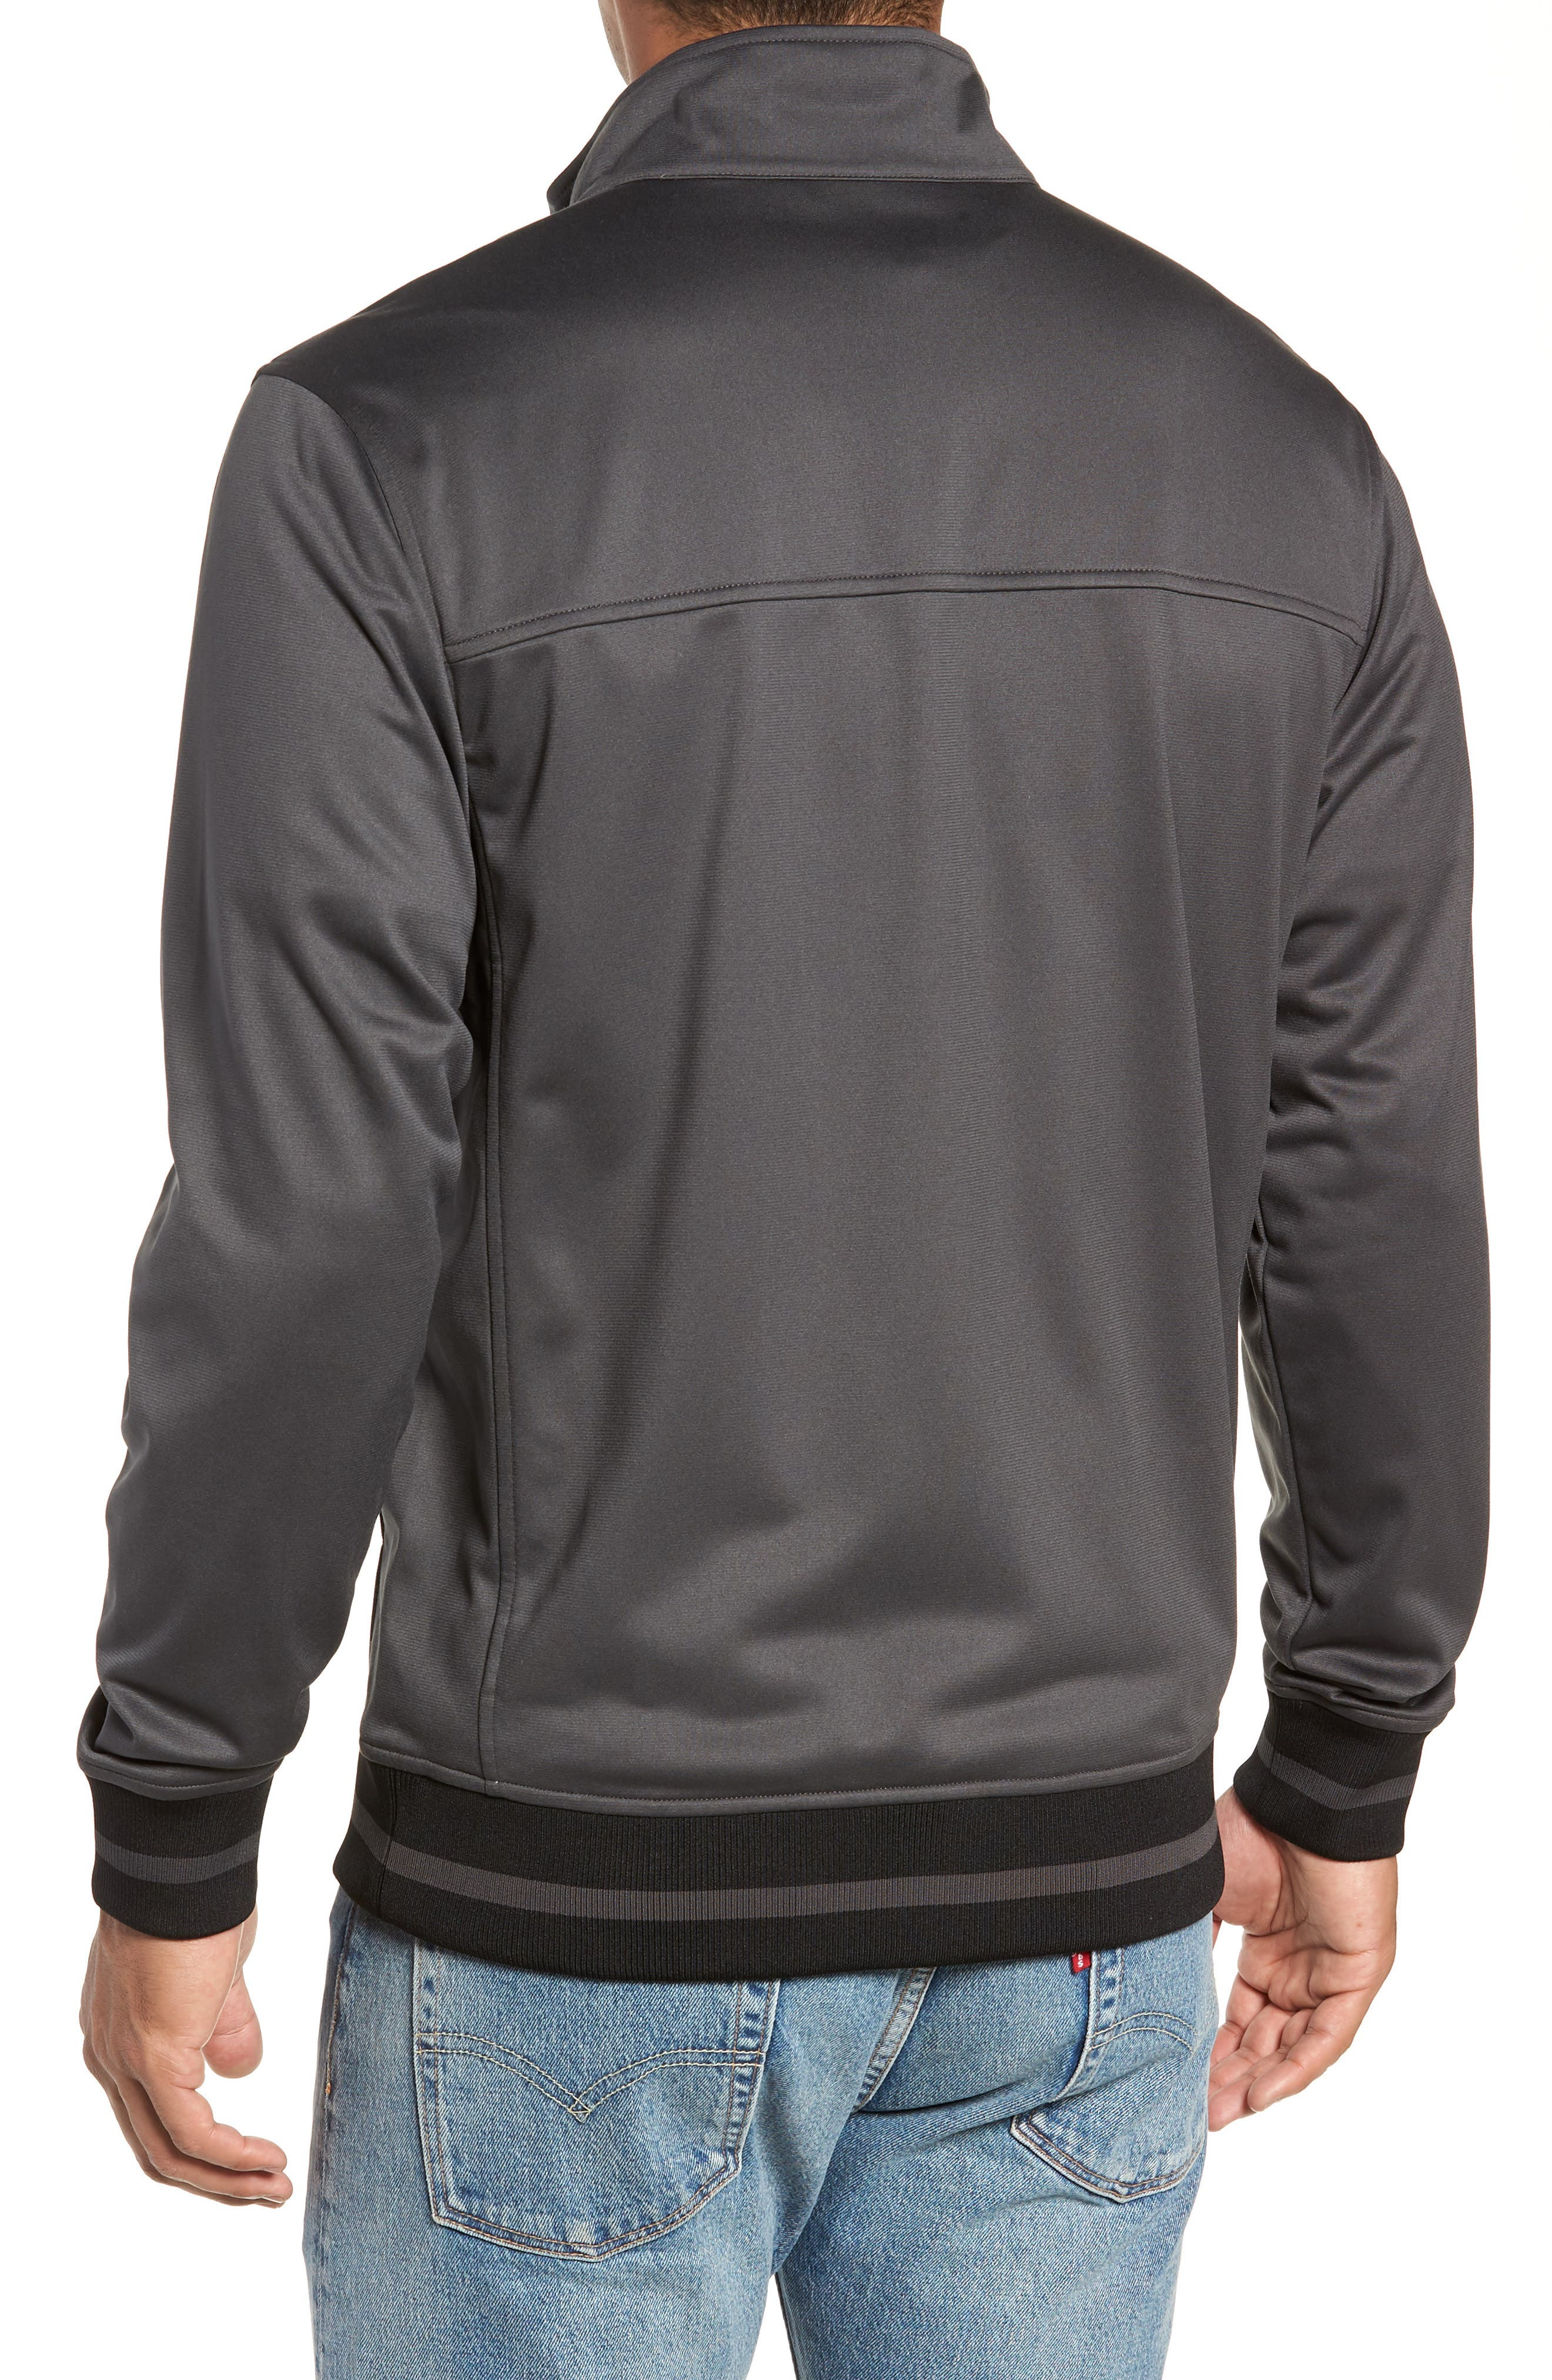 Alphabet City Track Jacket,                             Alternate thumbnail 2, color,                             ASPHALT GREY